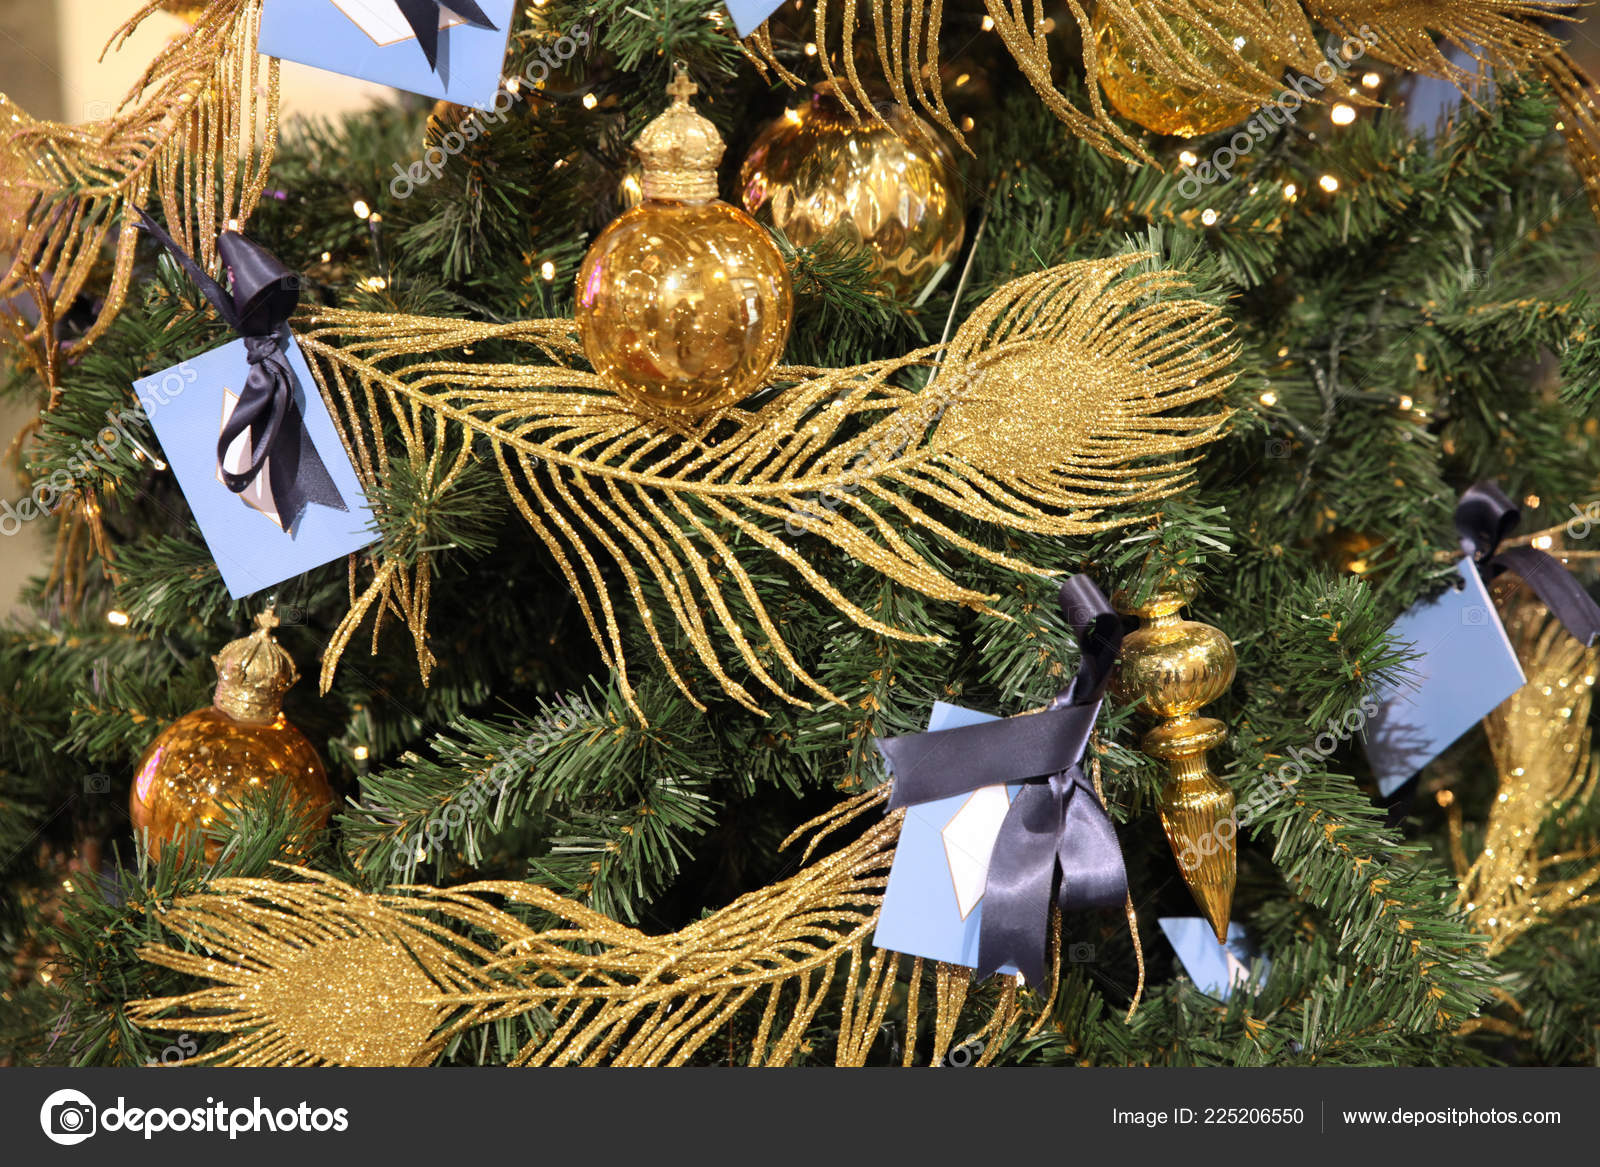 Golden Peacock Feathers Christmas Tree Balls Close Stock Photo Image By C Ozina 225206550